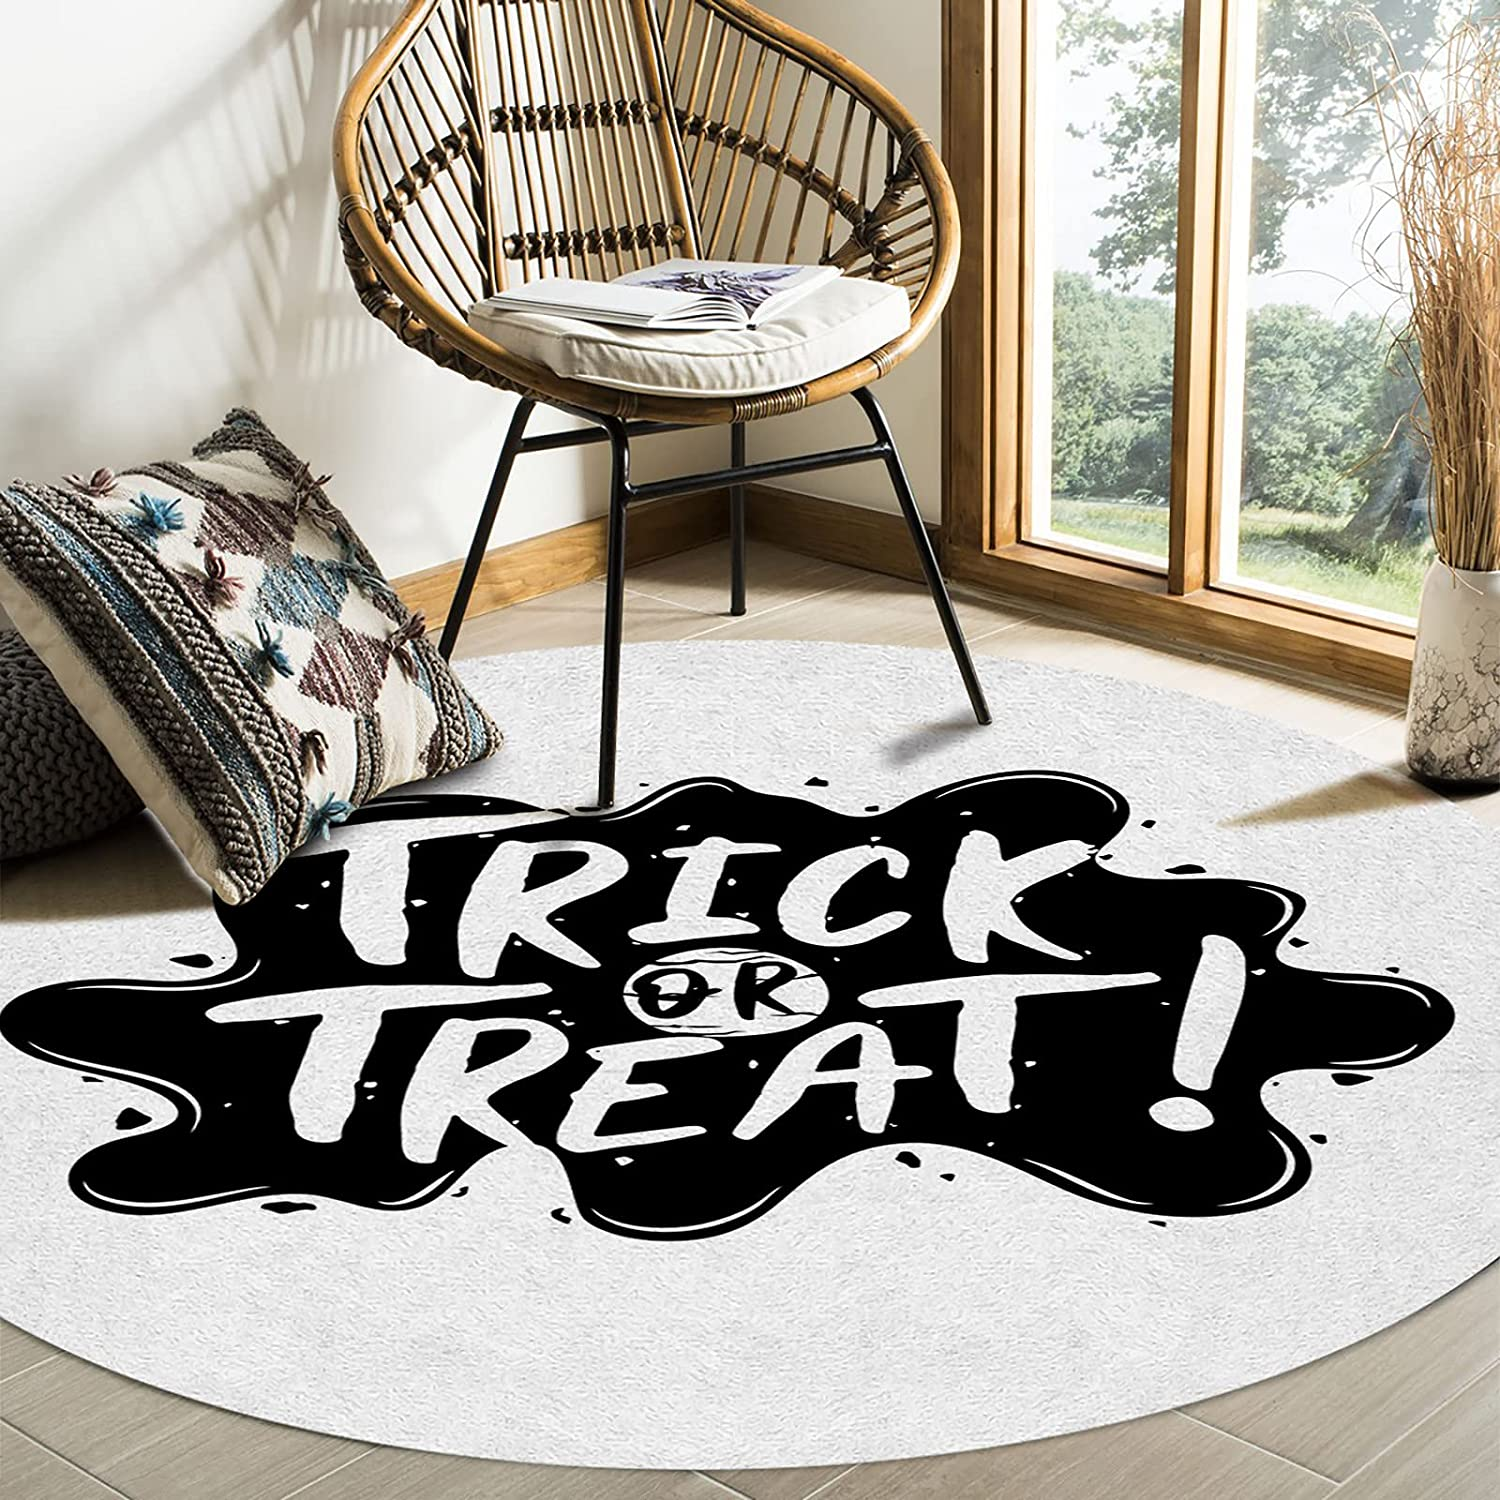 HELLOWINK Round 35% OFF Area Rugs 5ft OR Halloween Treat Non-Shed Trick Super popular specialty store